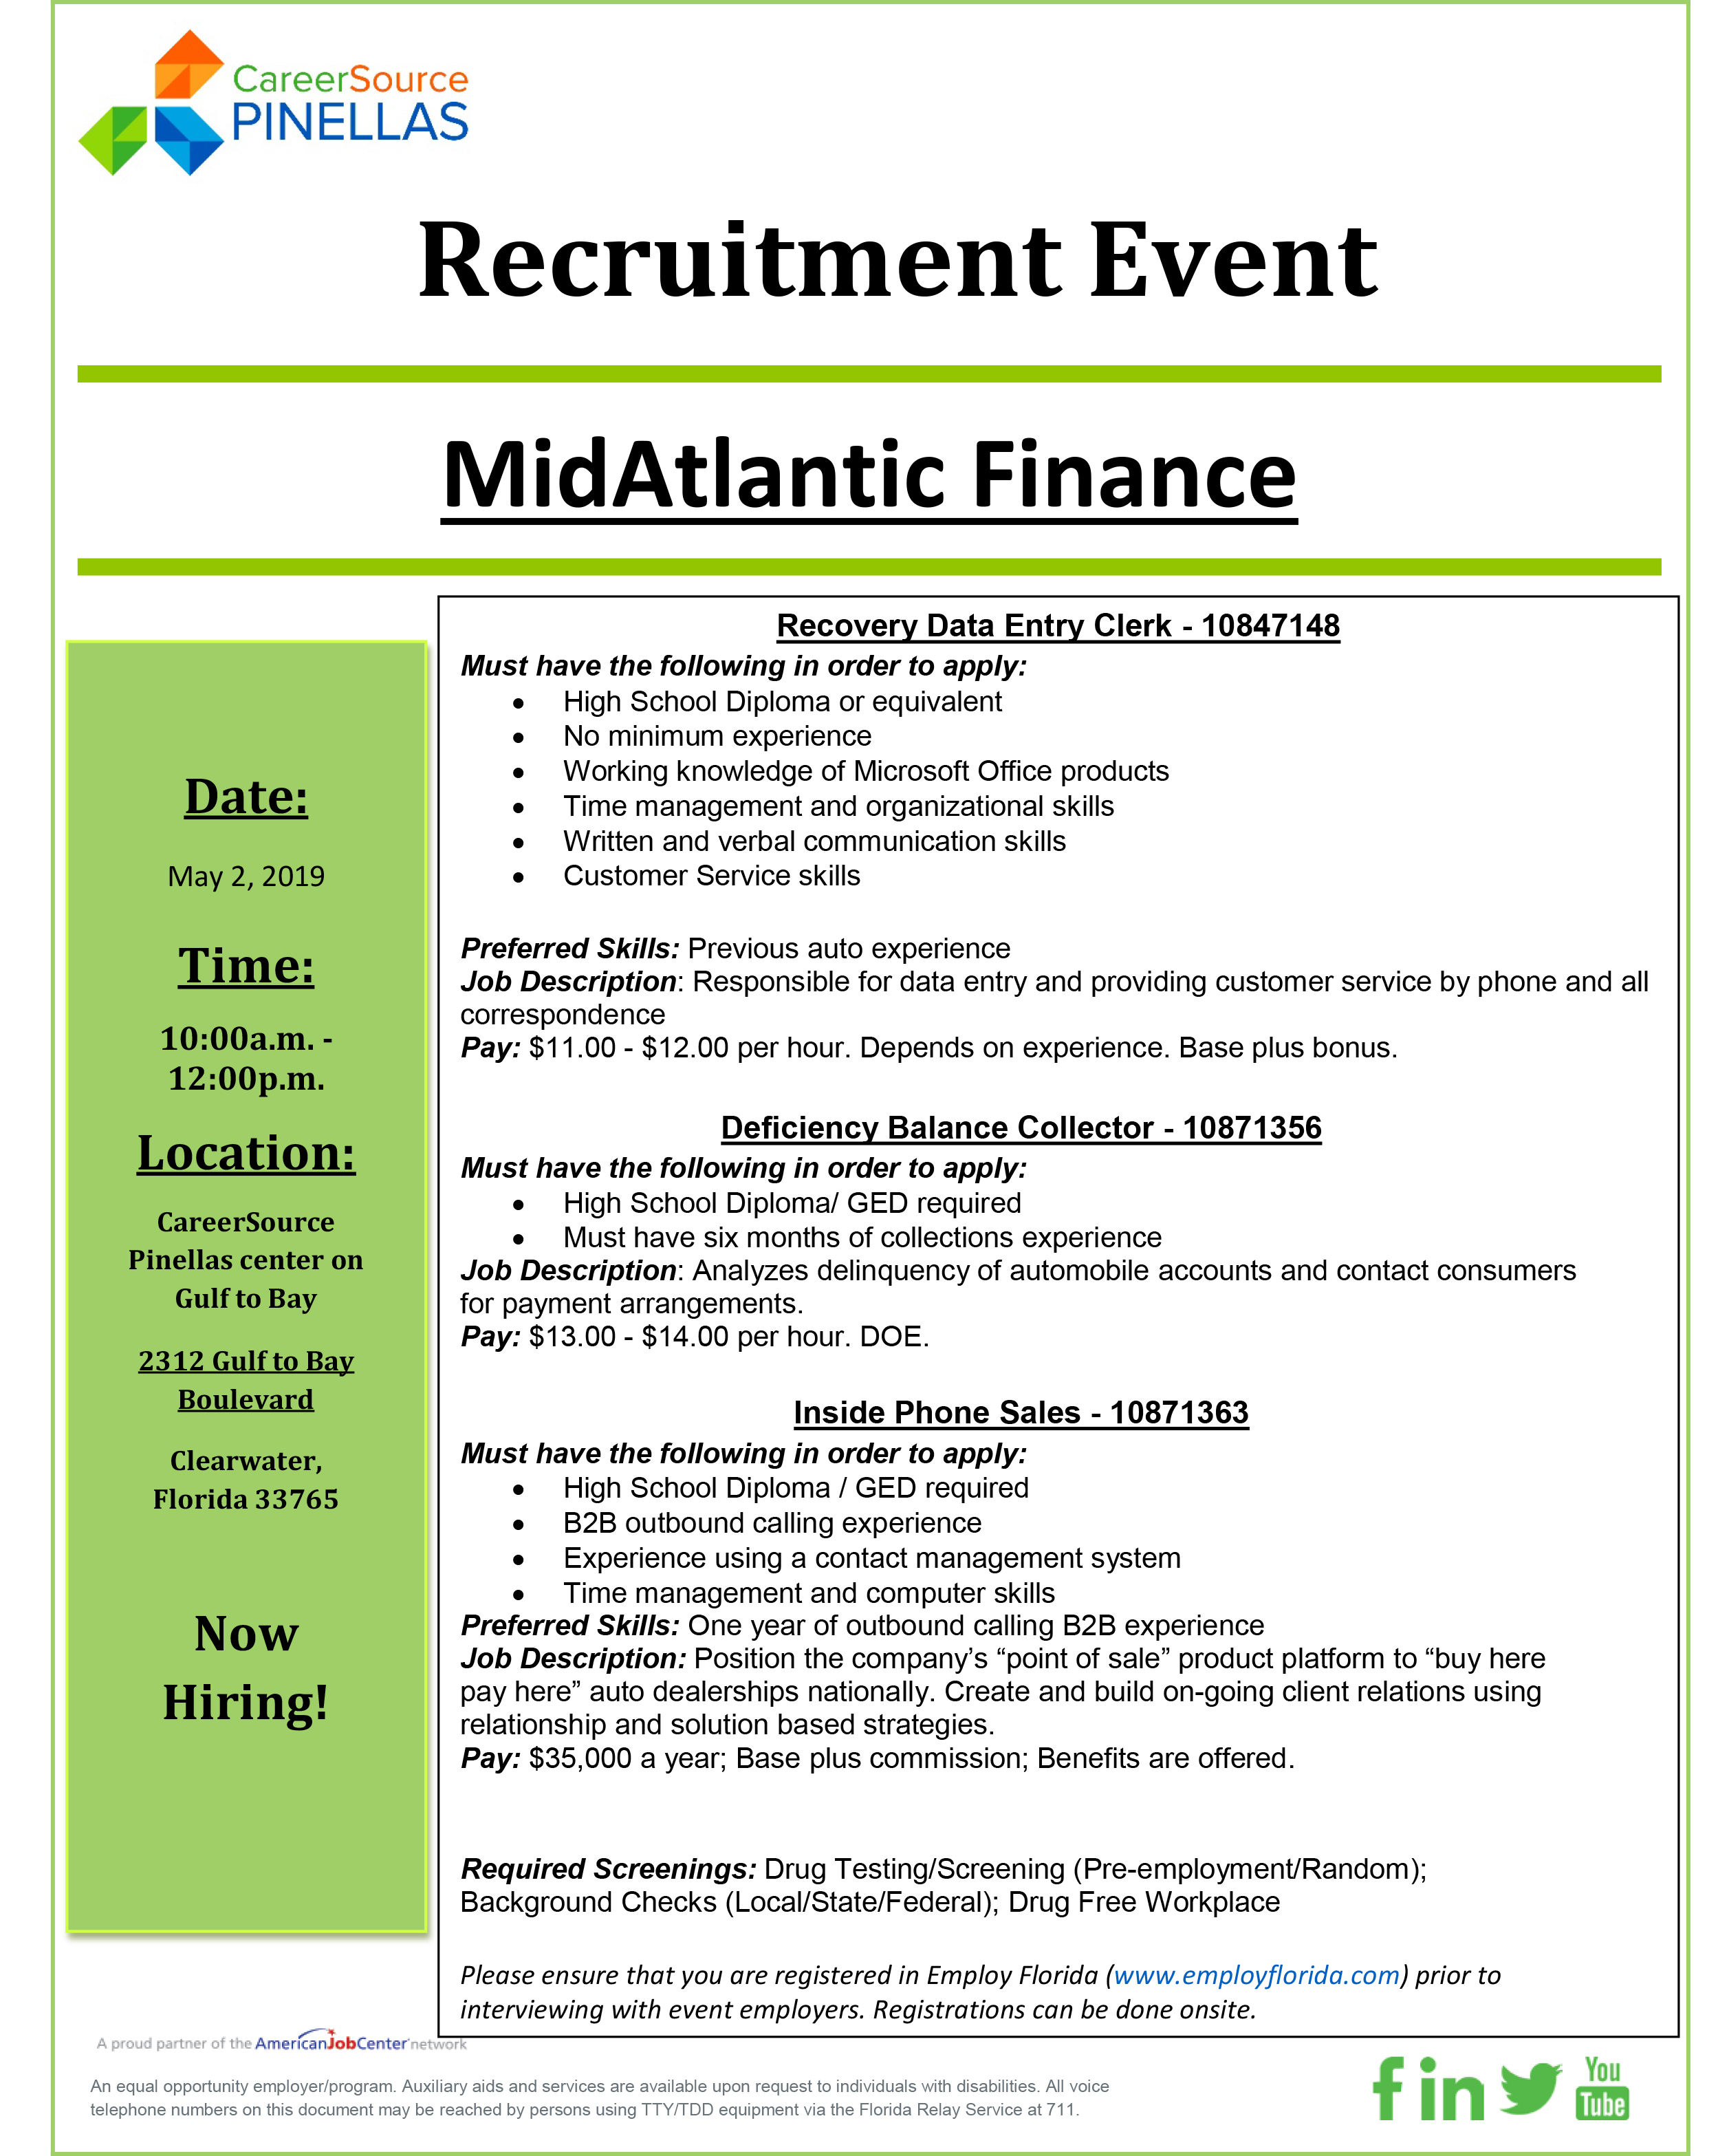 MidAtlantic Finance On-Site 5.2.2019.jpg